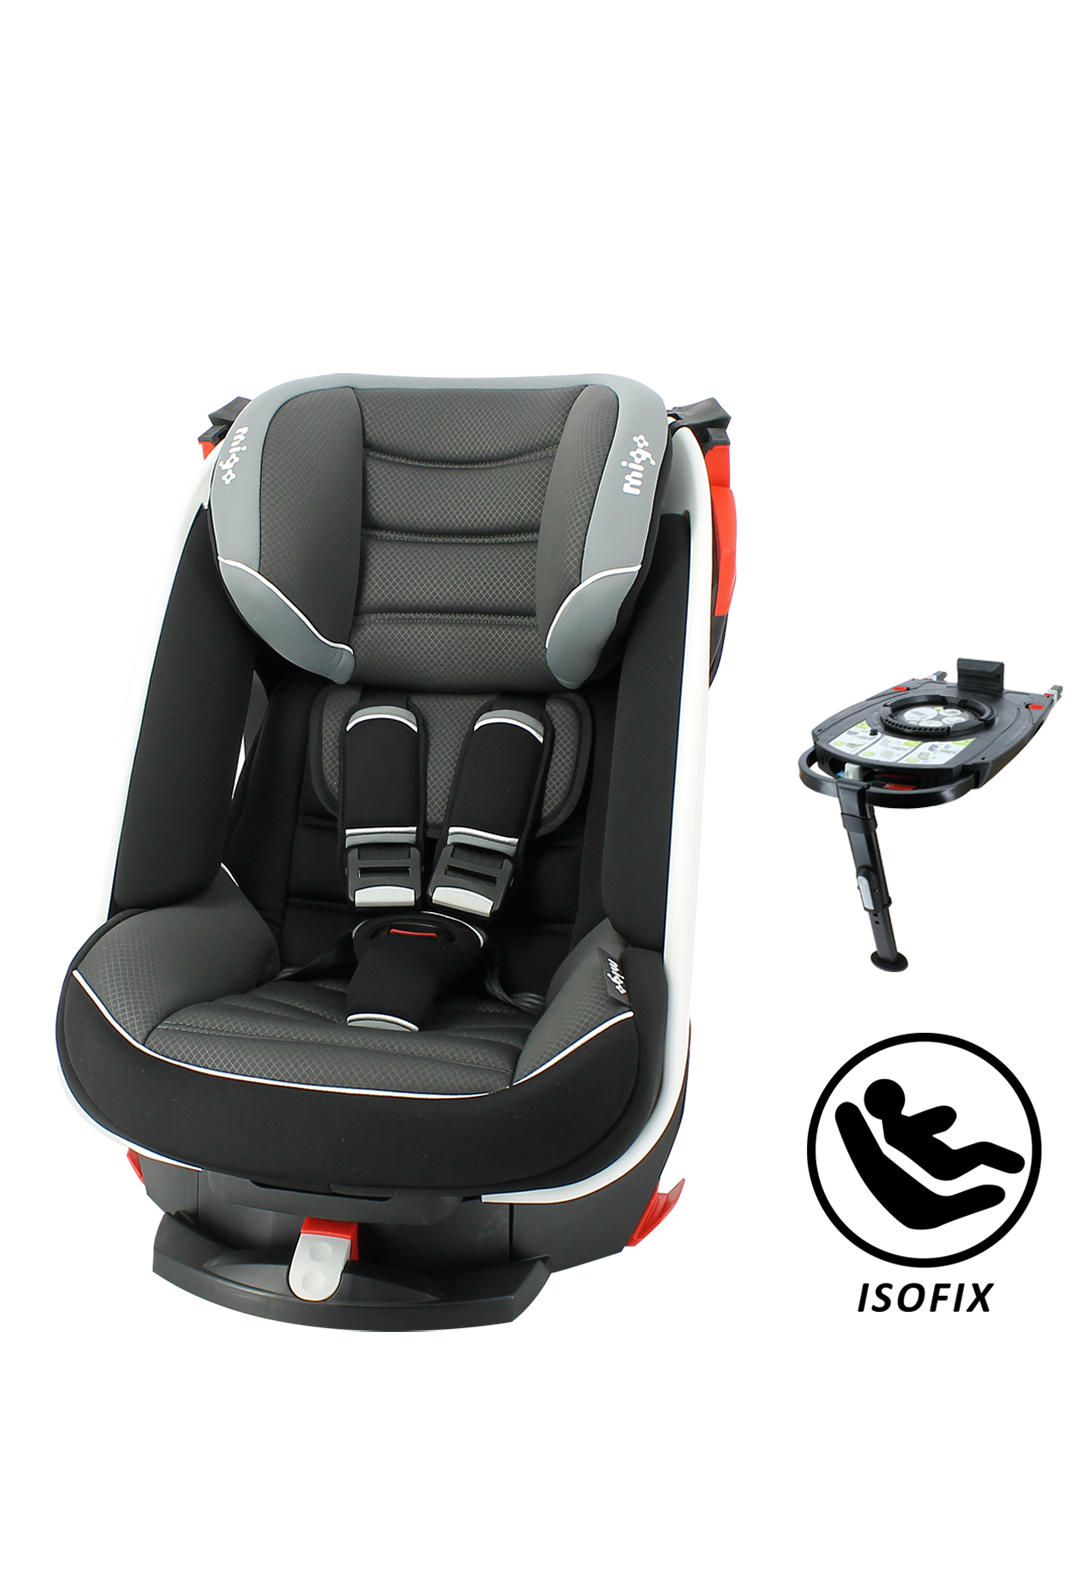 si ge auto isofix saturn grp 1 neoshop by migo. Black Bedroom Furniture Sets. Home Design Ideas